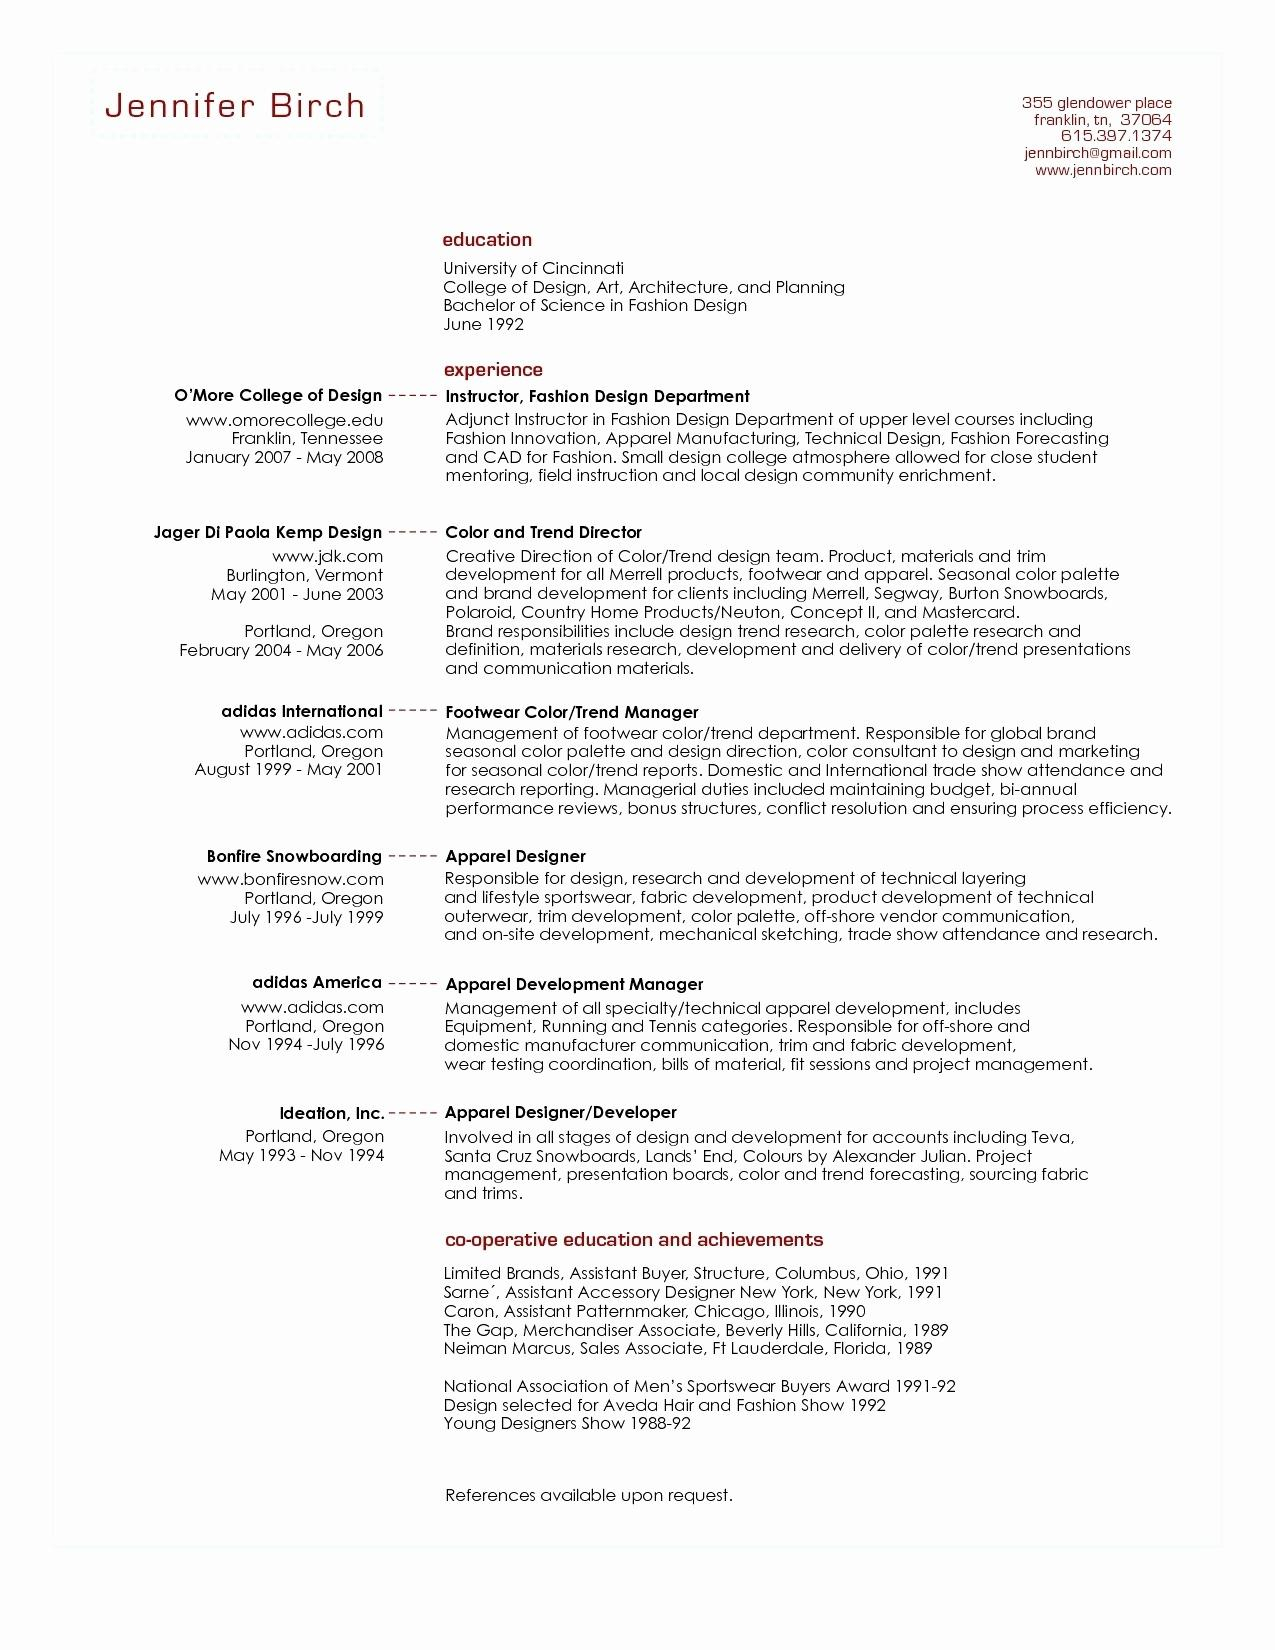 uiuc resume template Collection-Resume format for Bba Graduates Luxury Law Student Resume Template Best Resume Examples 0d 18-t